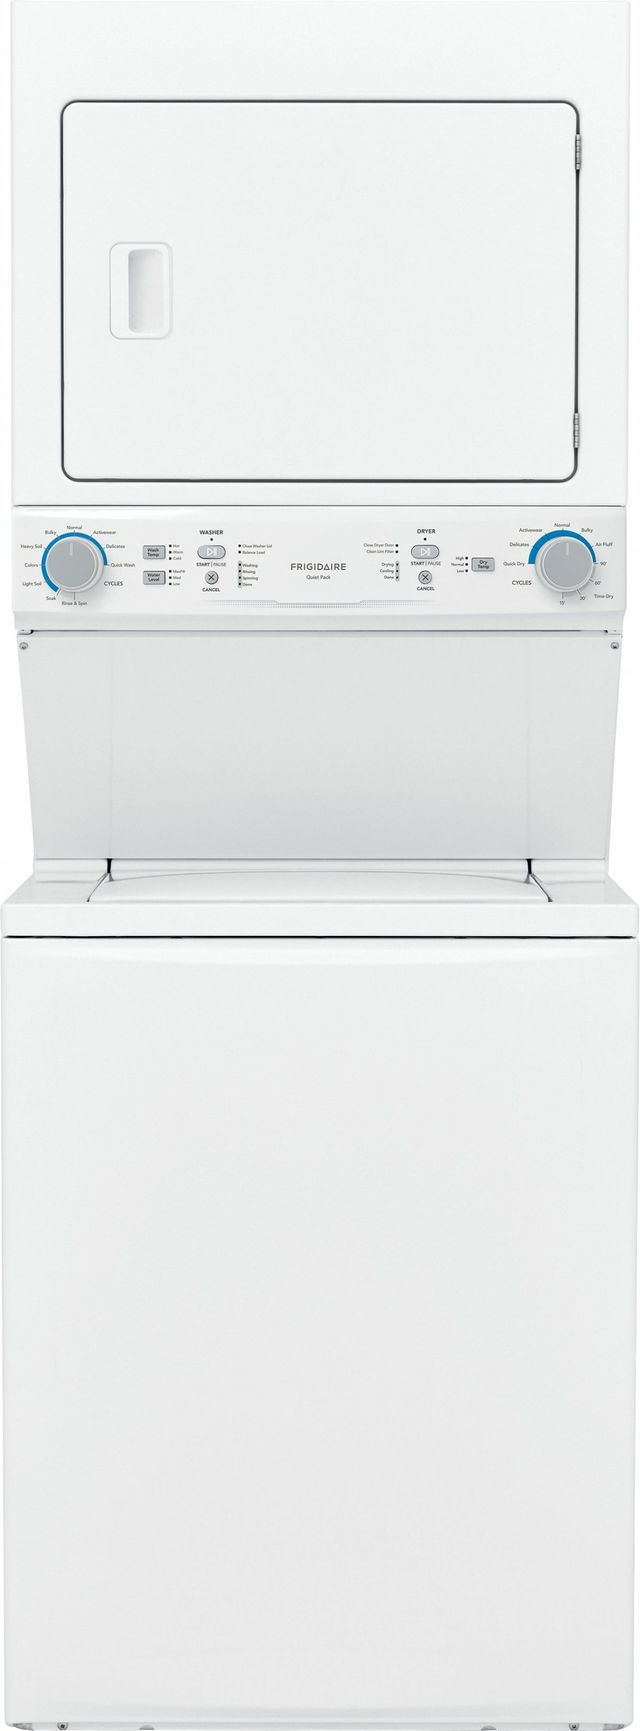 Frigidaire® 3.9 Cu. Ft. Washer, 5.6 Cu. Ft. Dryer White Electric Stack Laundry-FLCE7522AW